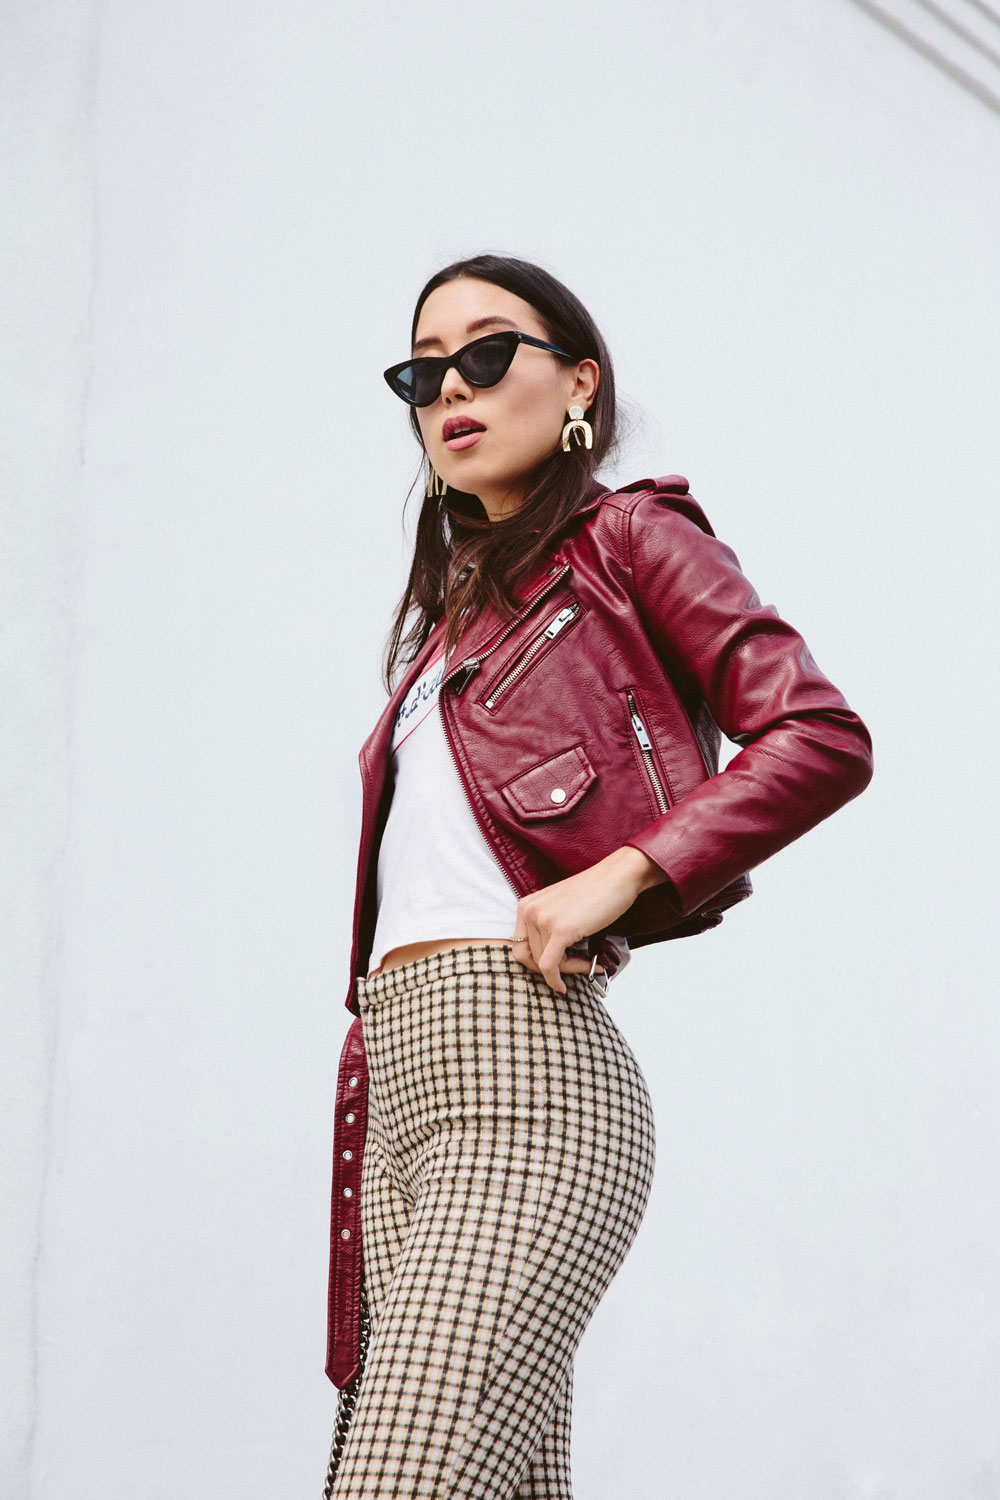 LOVE OR MONEY by Emily Tong wearing Mango checker pants graphic tee red leather jacket and satin heels